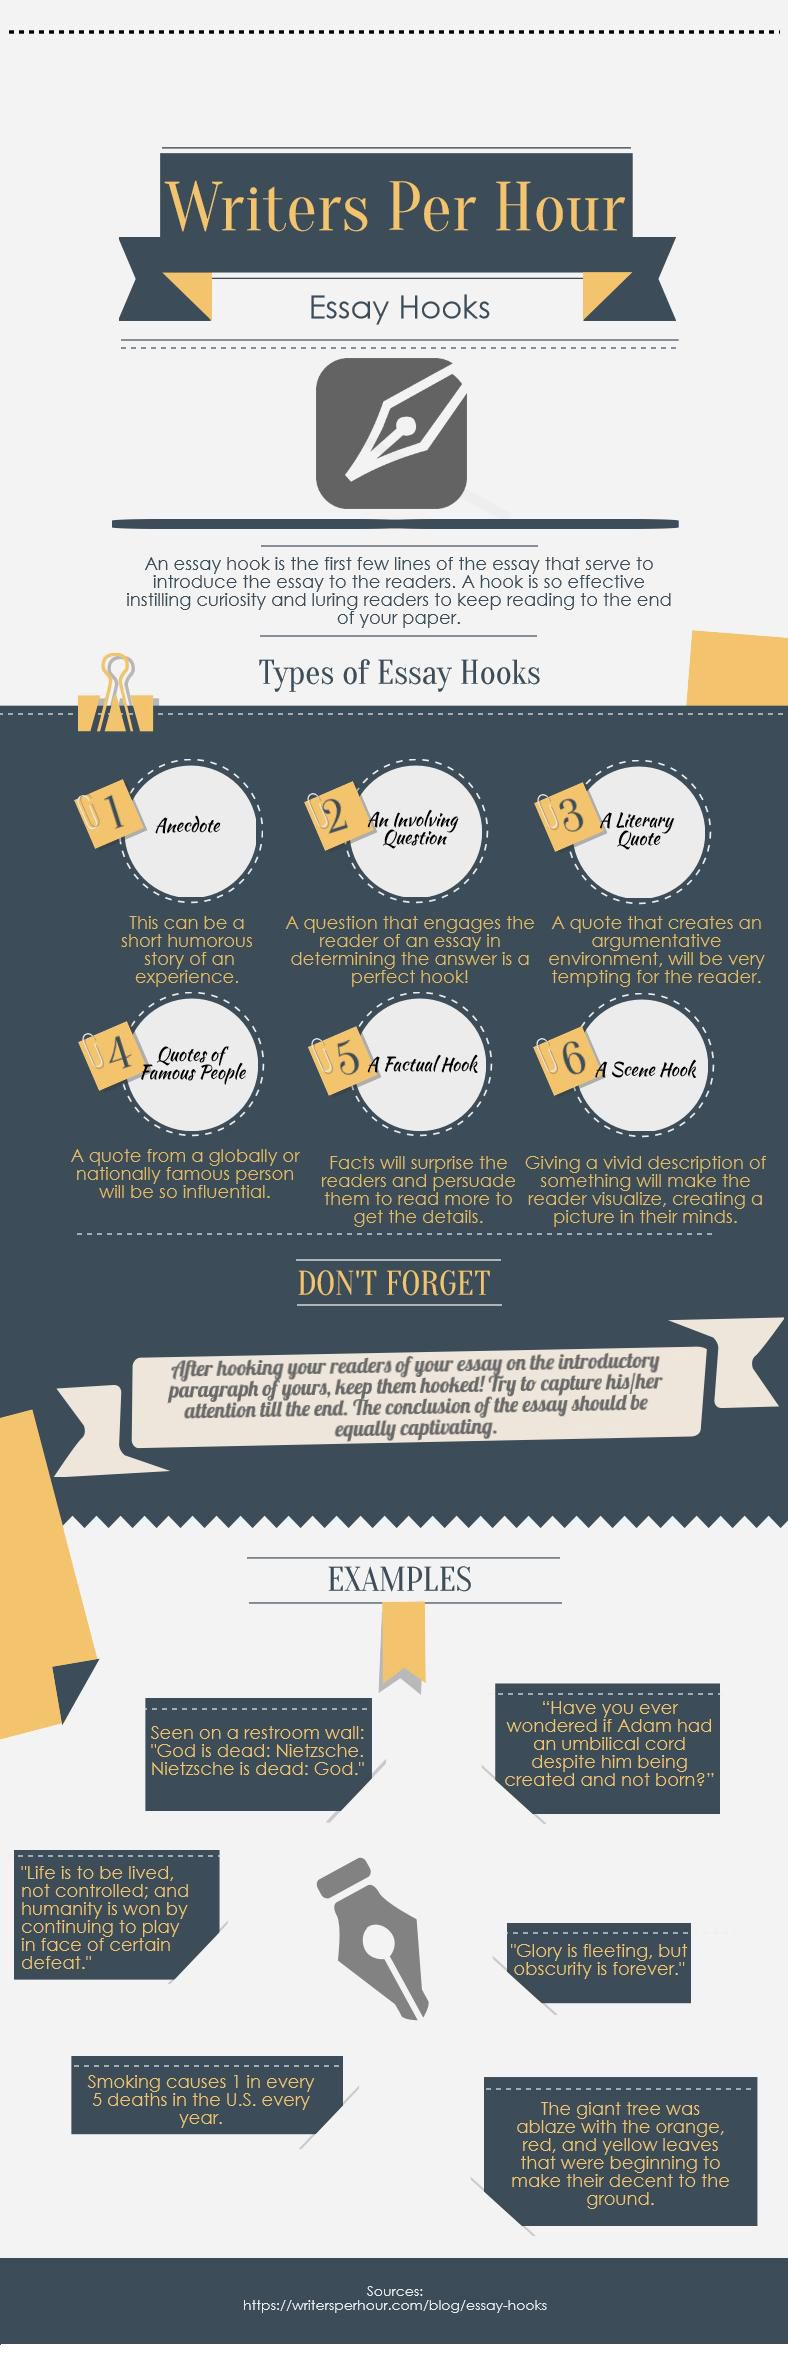 infographic on essay hooks be a better student education infographic on essay hooks be a better student education